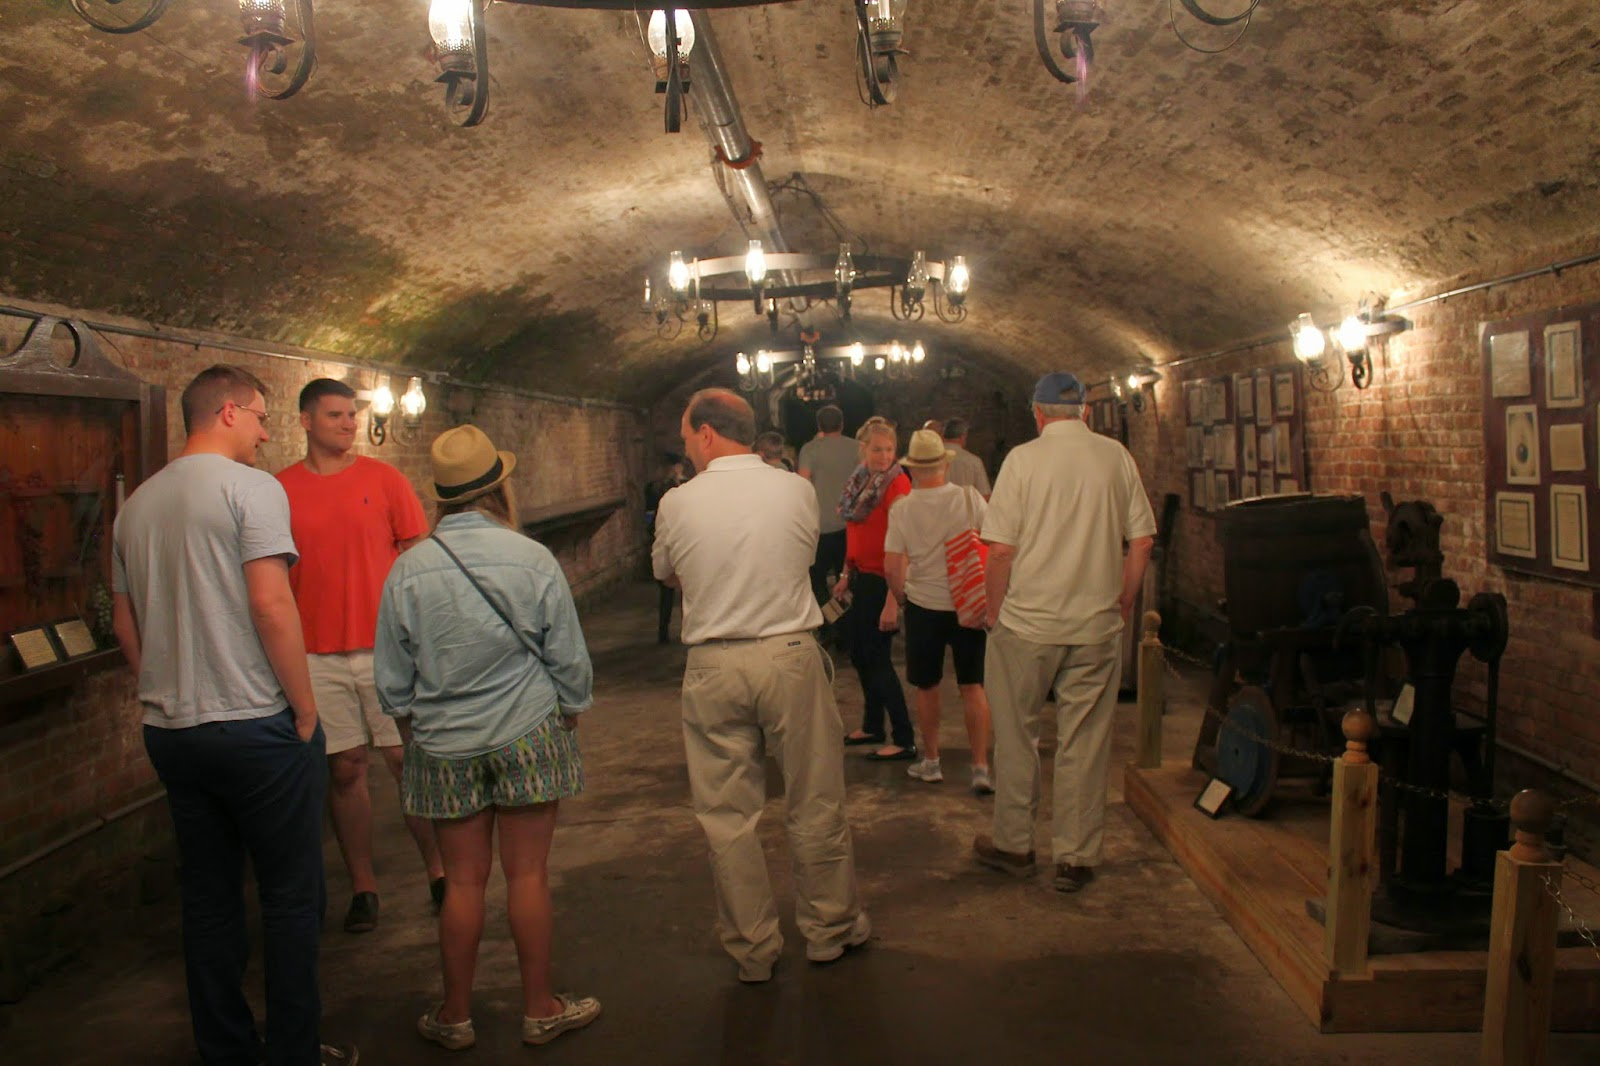 Brotherhood Winery cellar